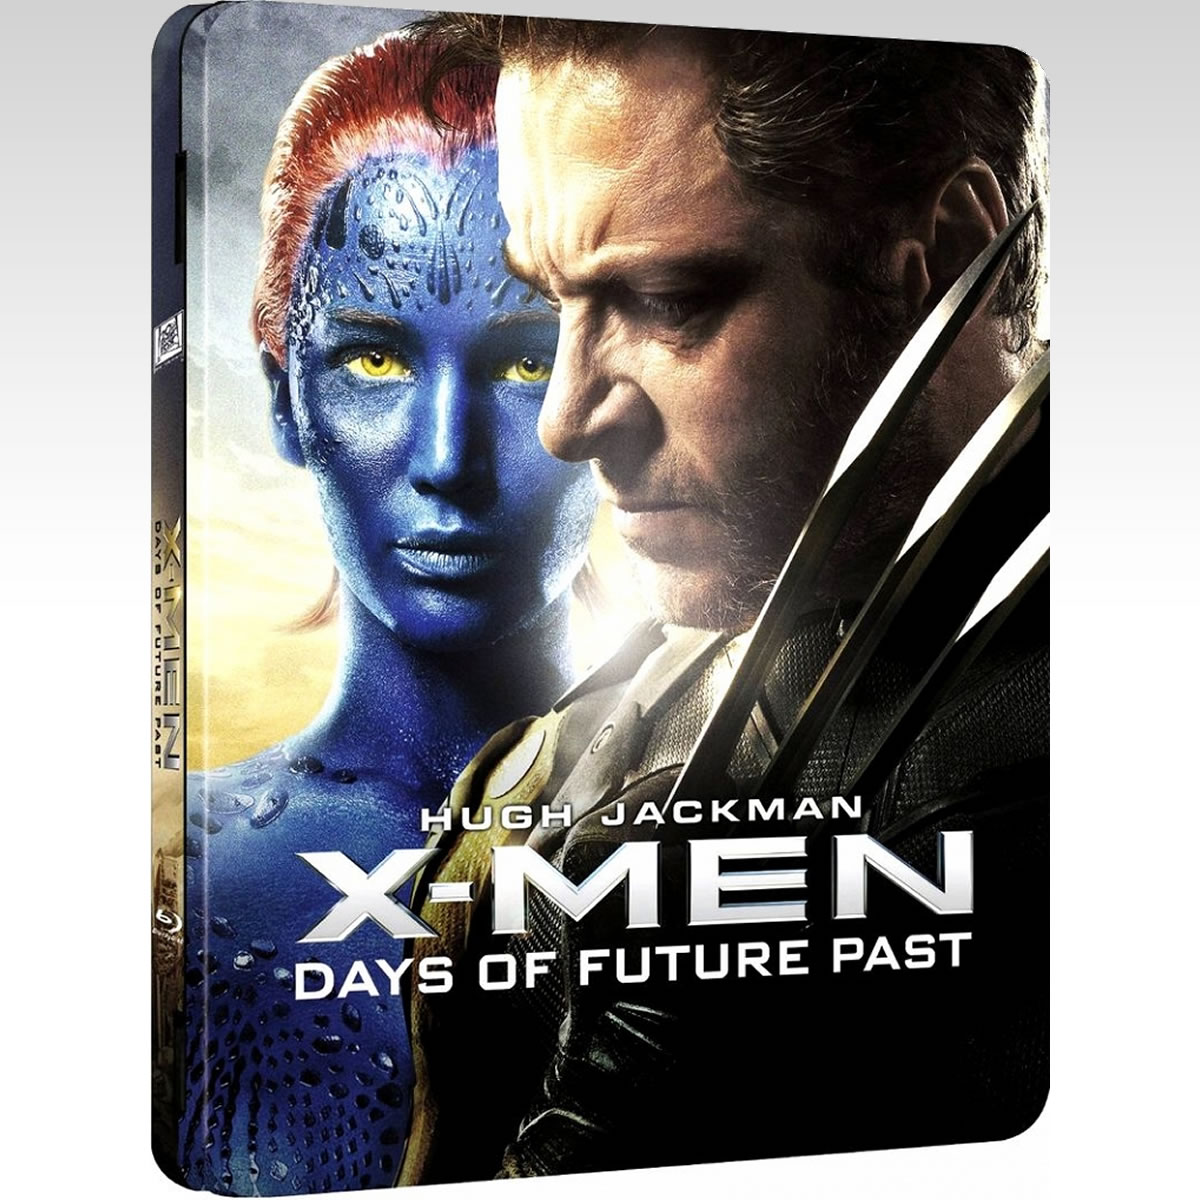 X-MEN: DAYS OF FUTURE PAST 3D - X-MEN: ������ ���� ���������� ��������� 3D Limited Collector's Edition Steelbook (BLU-RAY 3D + BLU-RAY)